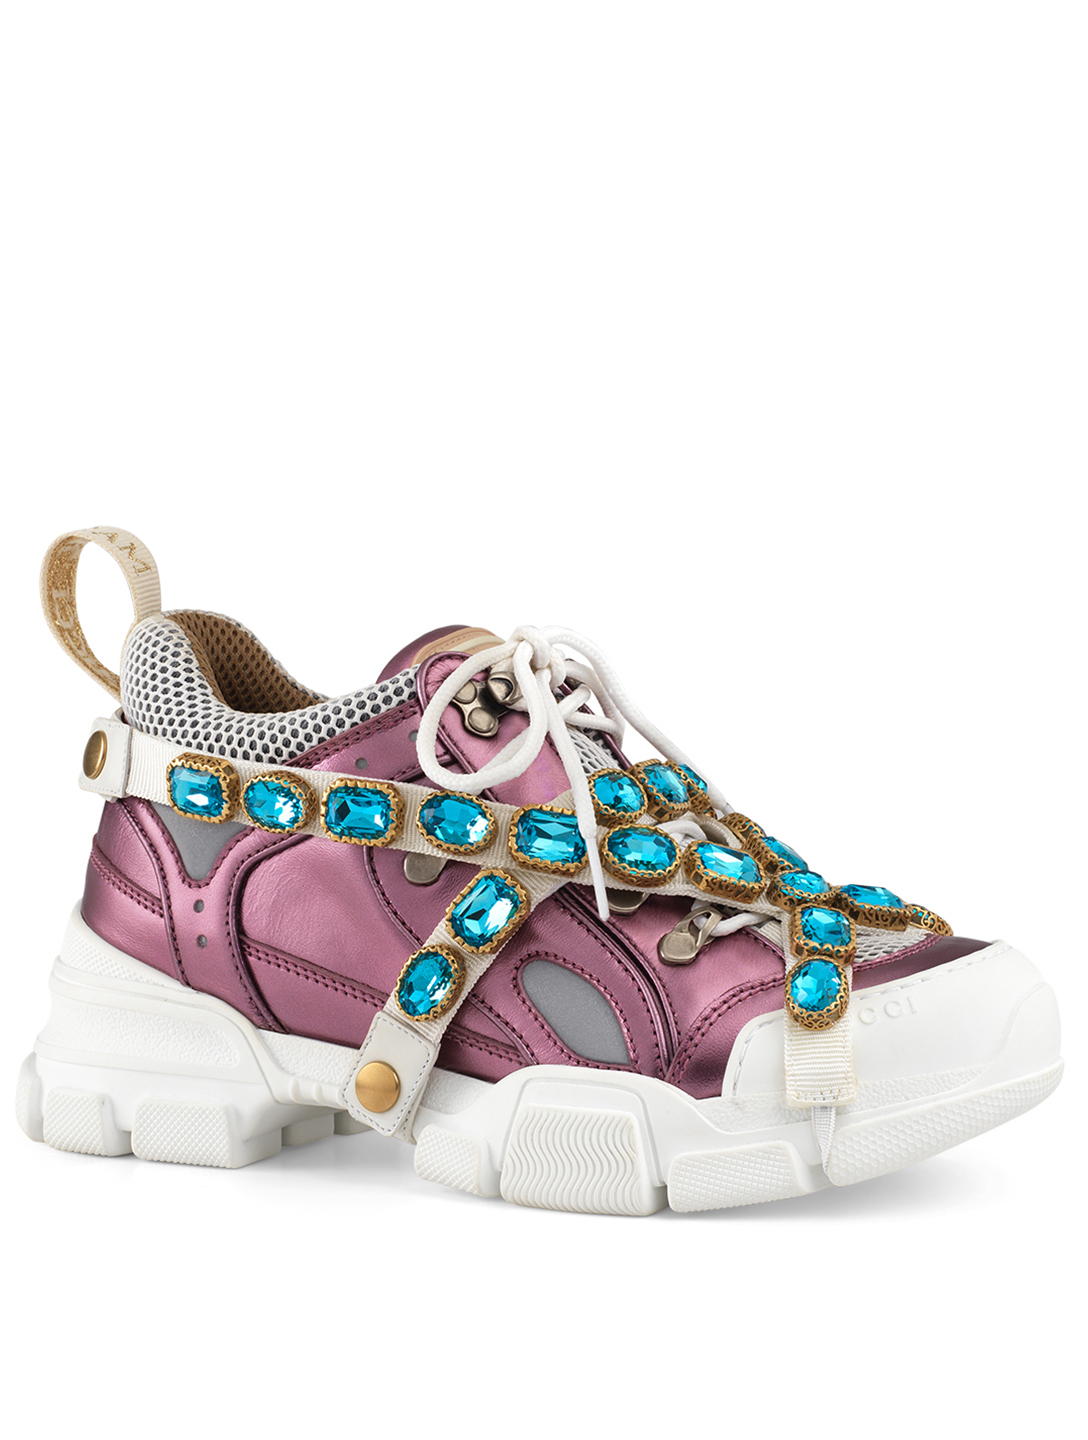 18f60b12242 ... GUCCI Flashtrek Sneakers With Removable Crystal Straps Designers Pink  ...